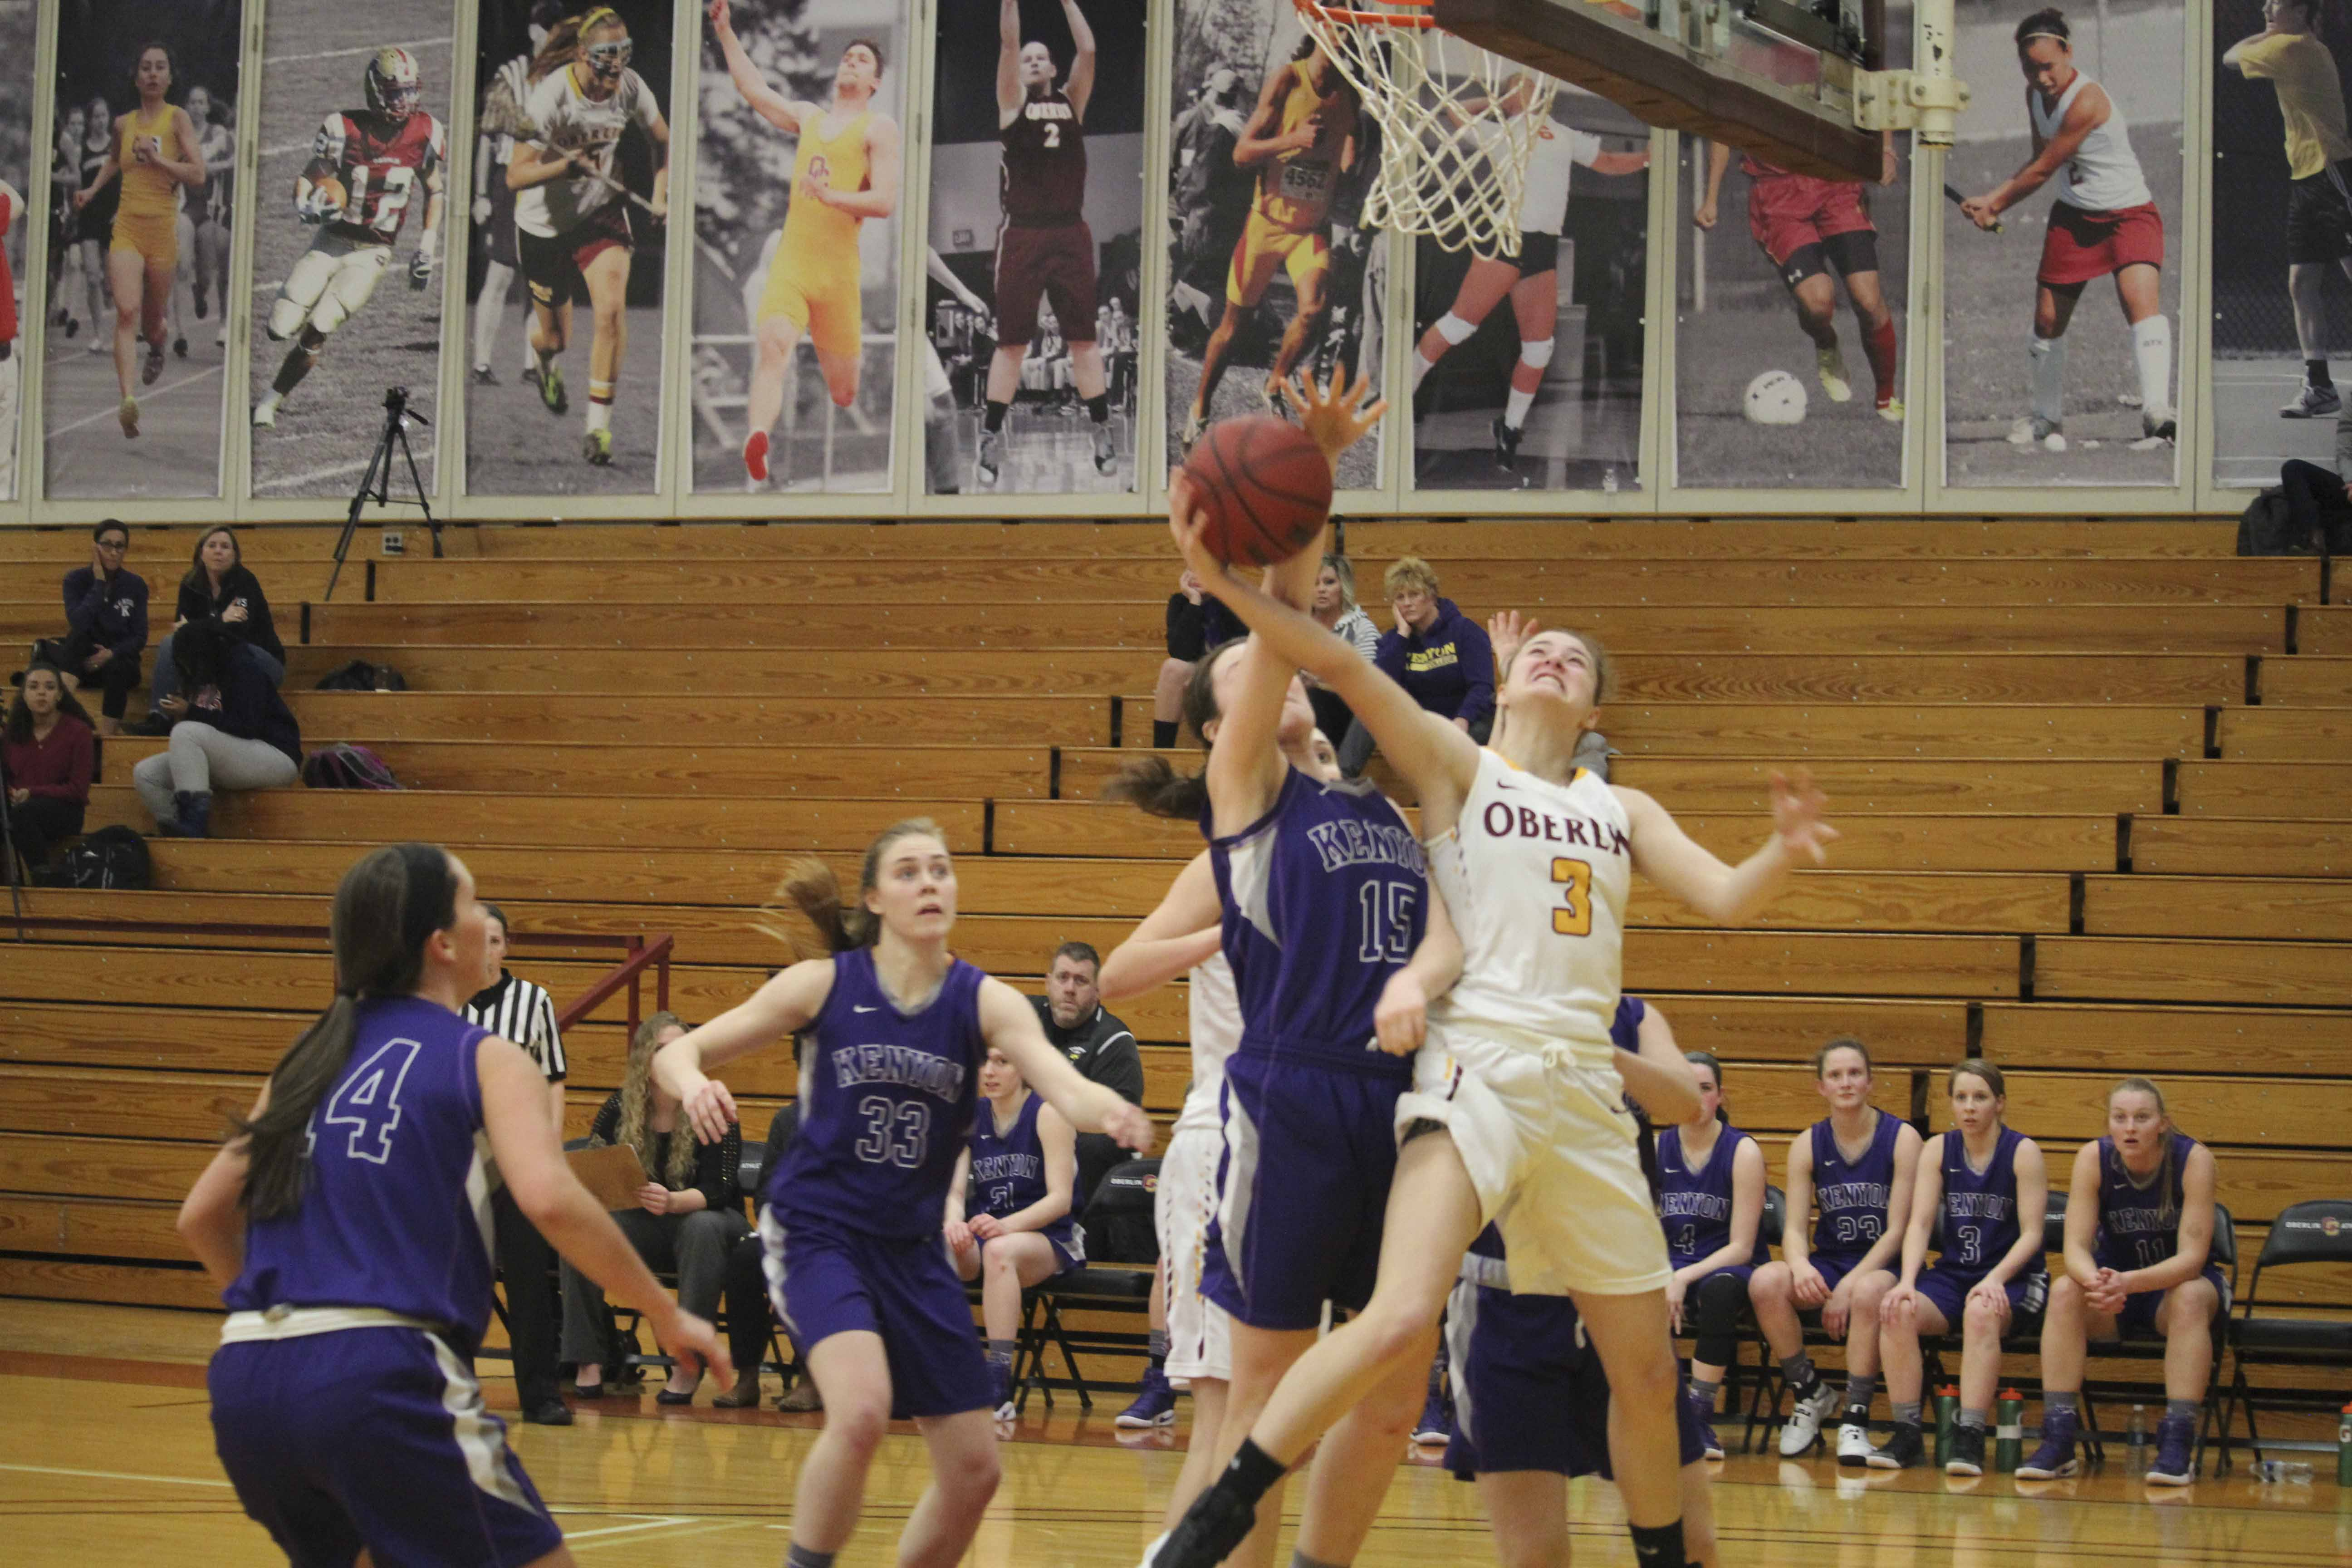 First-year guard Ally Driscoll puts up a contested layup in Oberlin's game against the Kenyon College Ladies Wednesday. Oberlin's 52–41 win over Kenyon boosts its record to 7–6 in NCAC play.